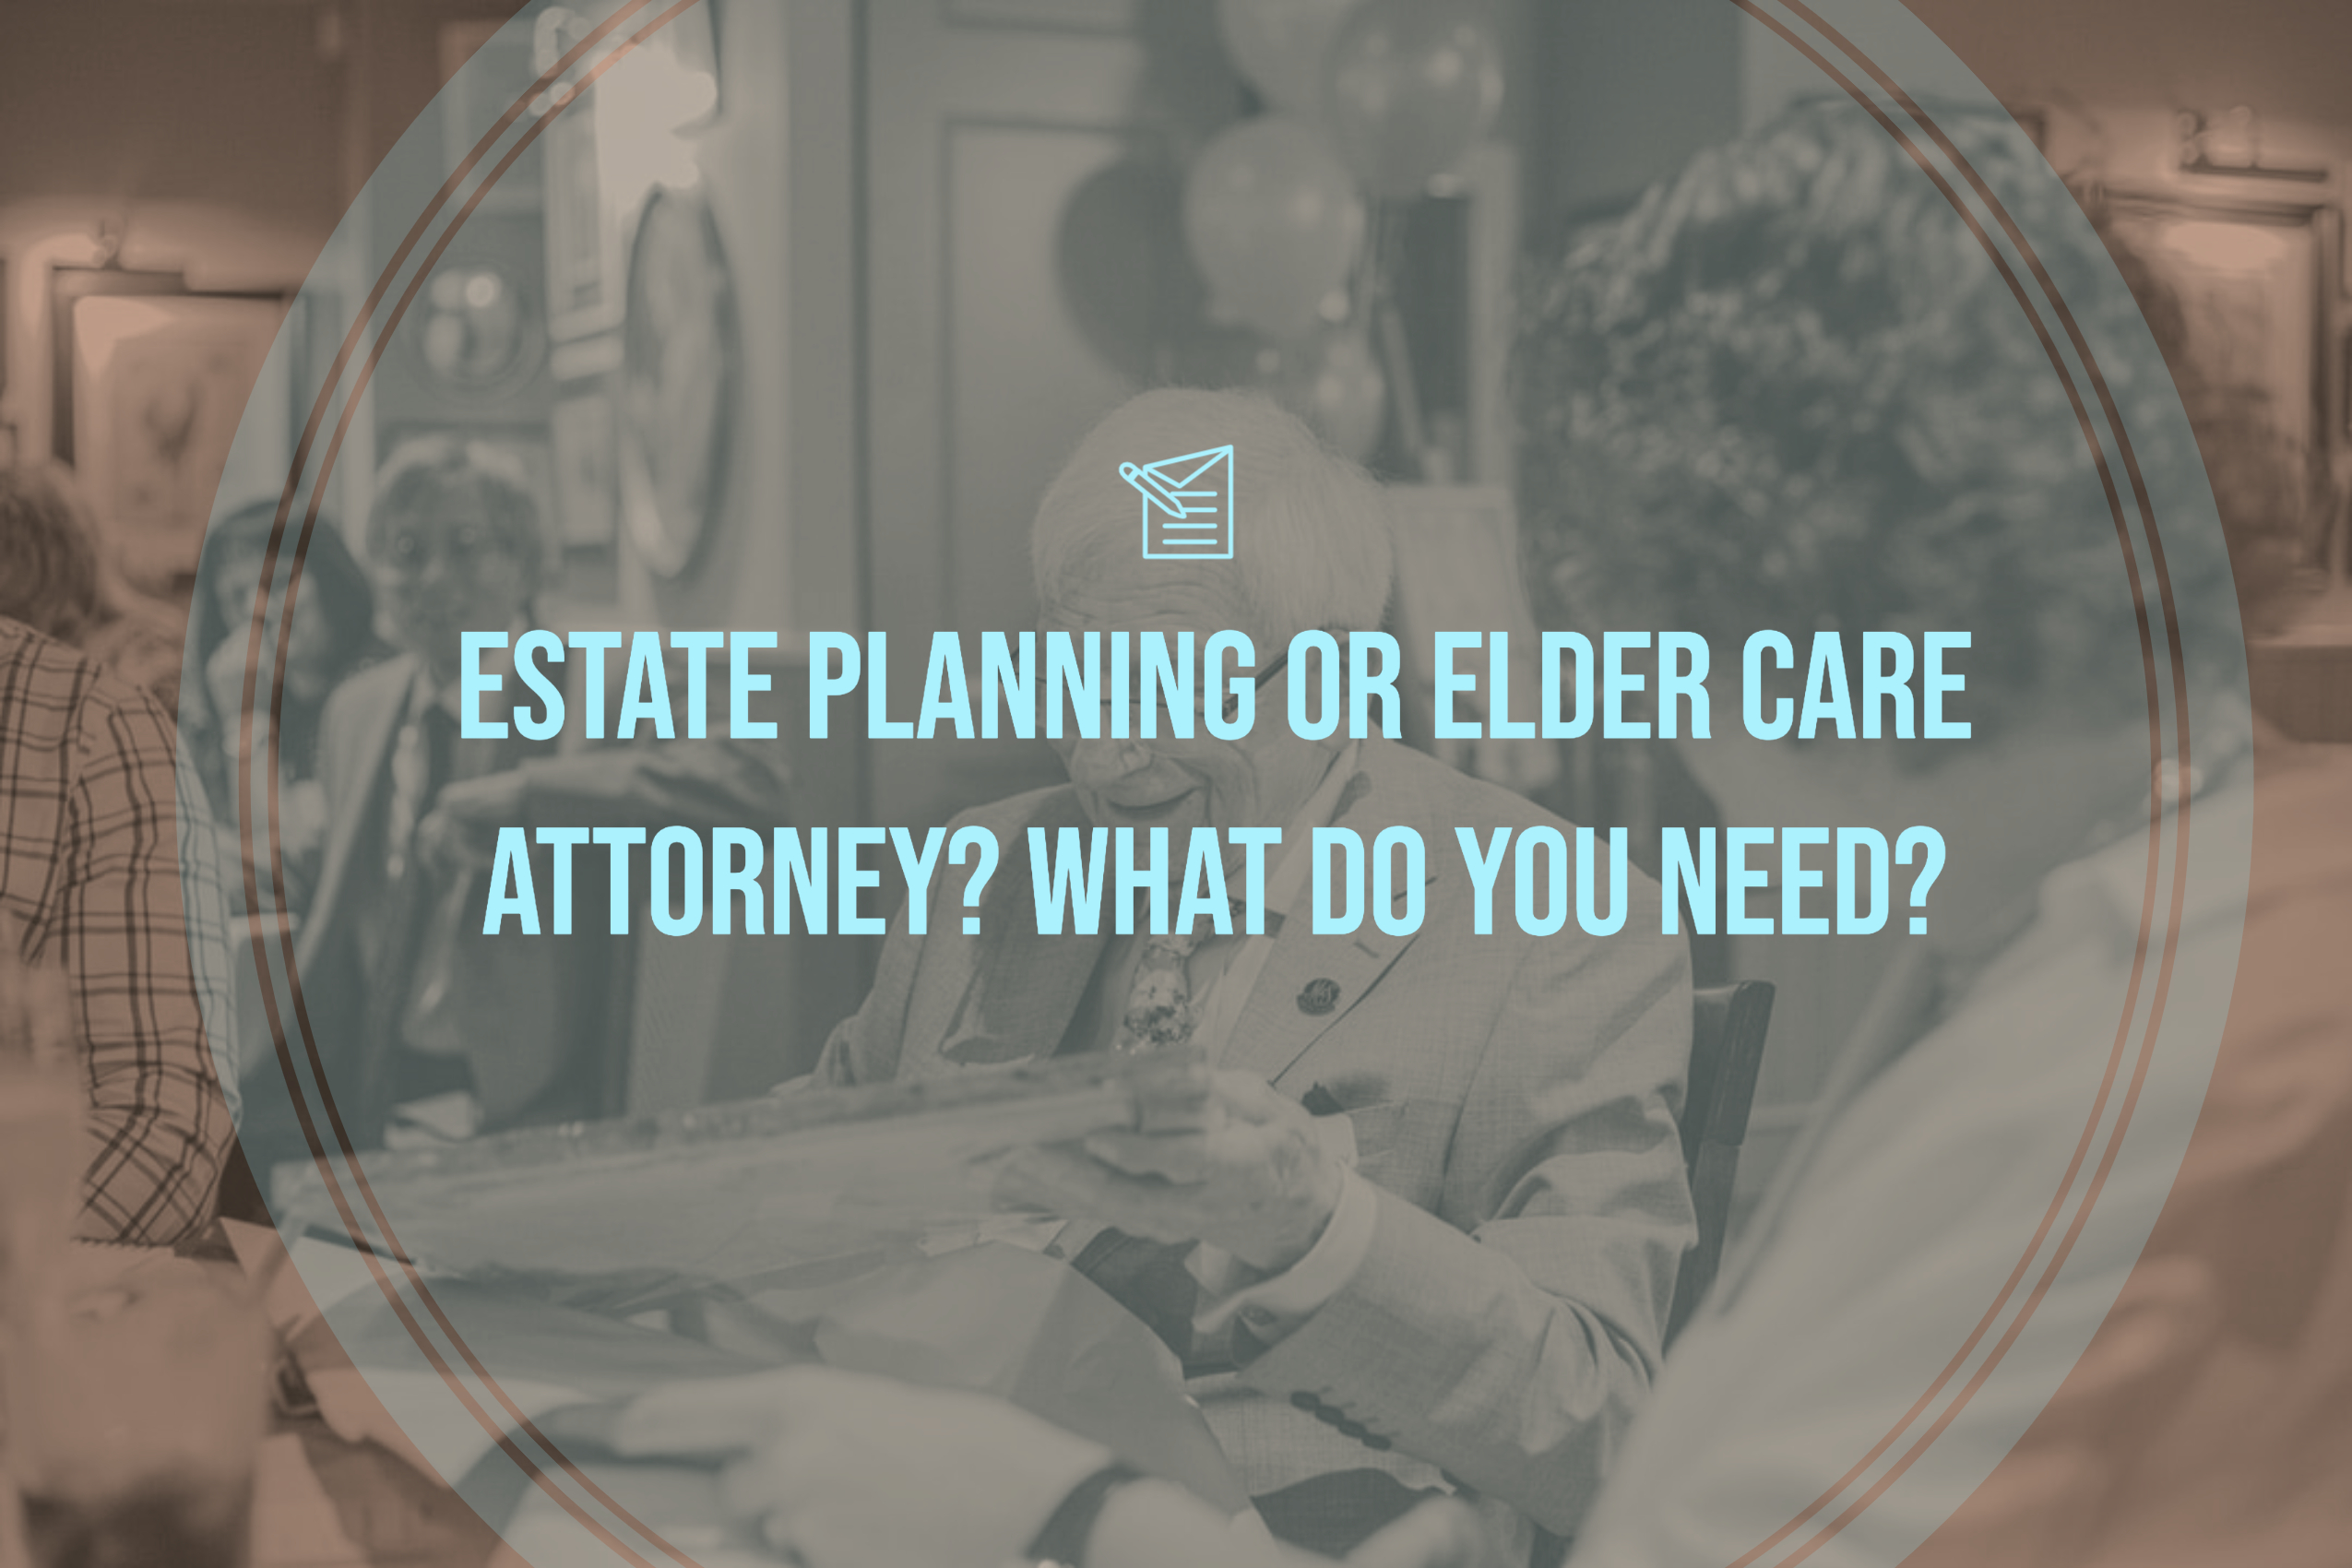 Estate Planning or Elder Care Attorney? What Do You Need?